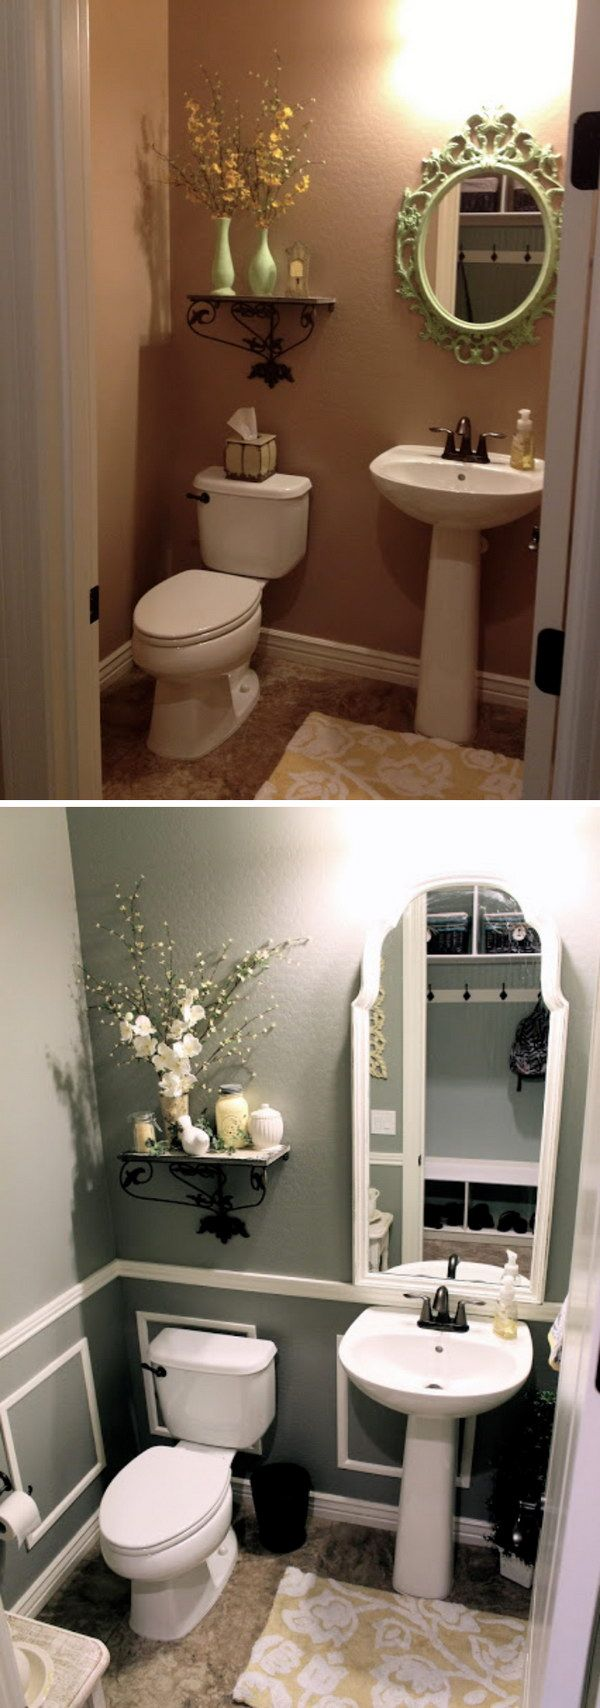 Bathroom Remodel Budget best 25+ half bathroom remodel ideas on pinterest | half bathroom